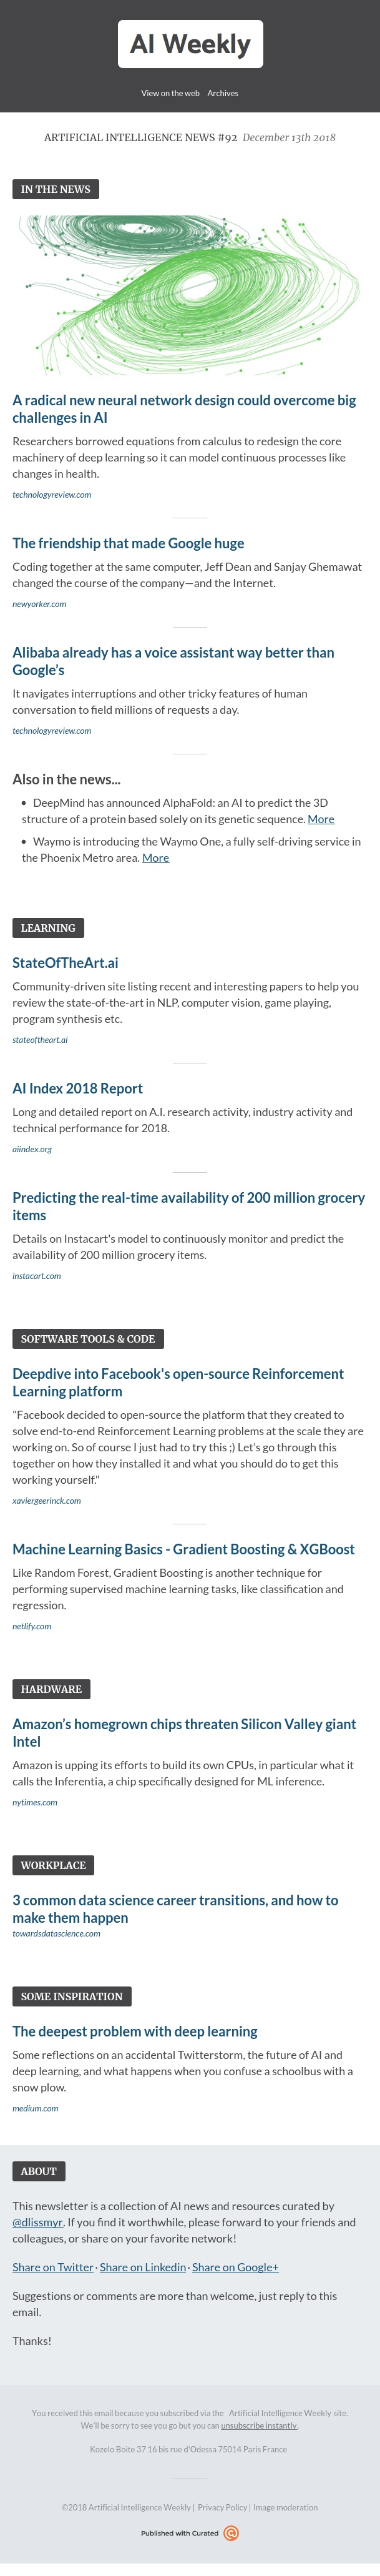 Artificial Intelligence Weekly - Artificial Intelligence News #92